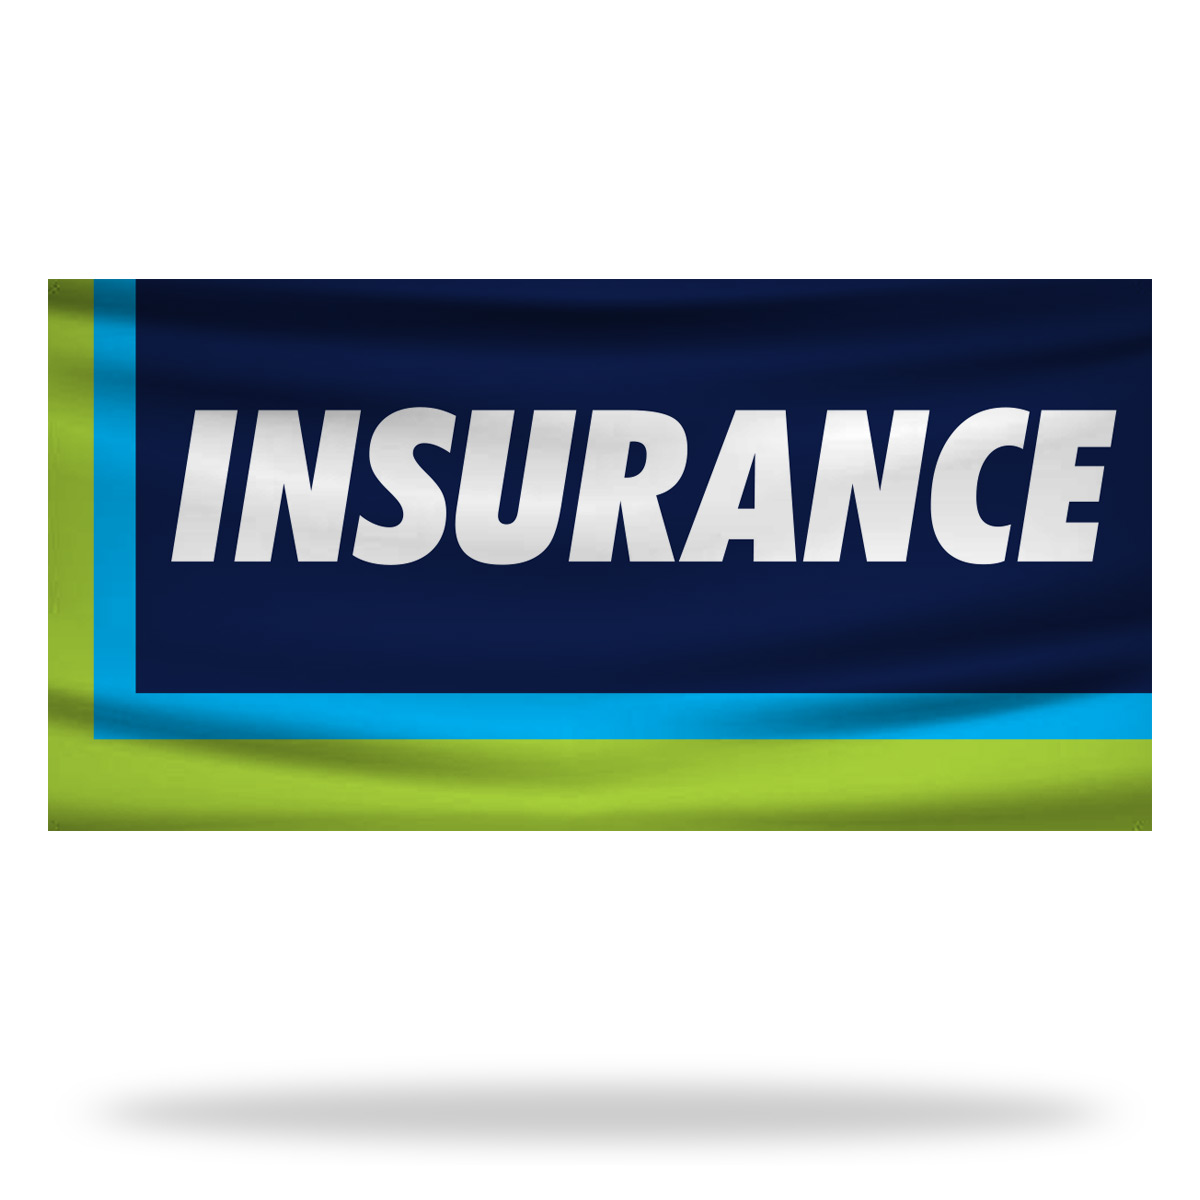 Insurance Flags & Banners Design 01